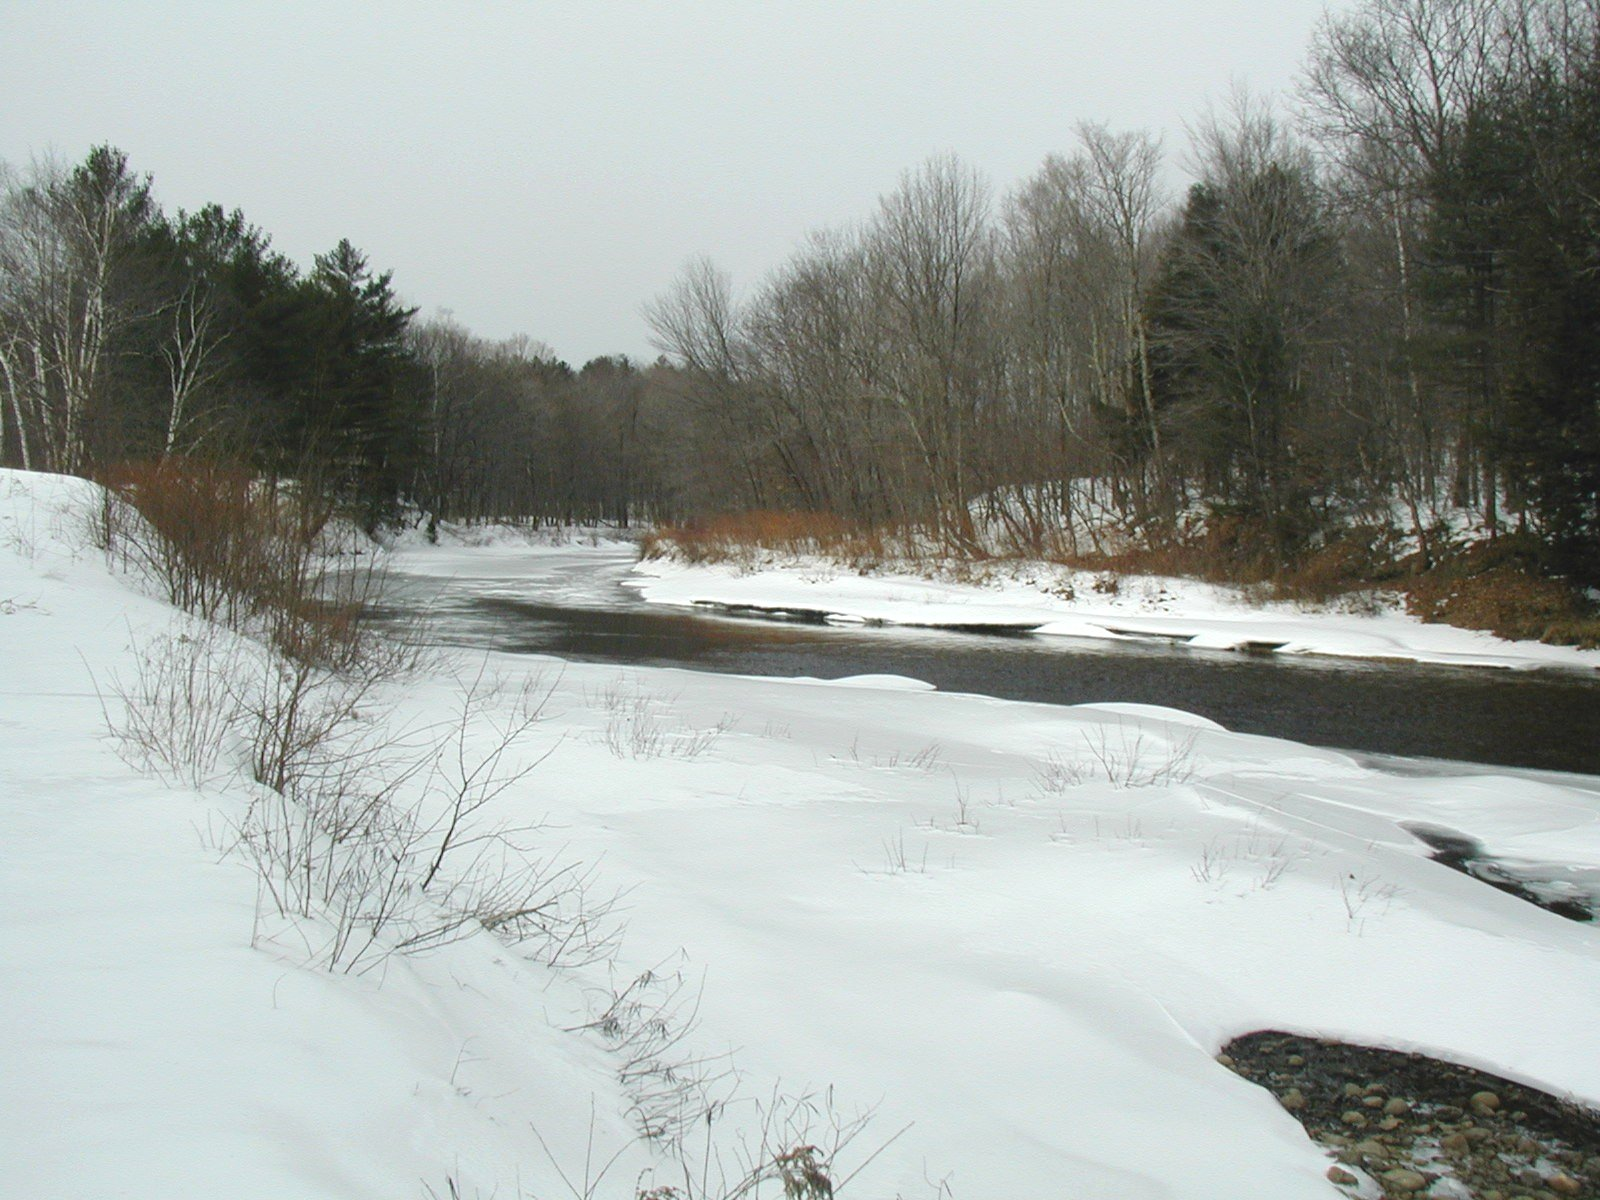 Photograph of the Baker River at Rumney, NH (RUMN3)